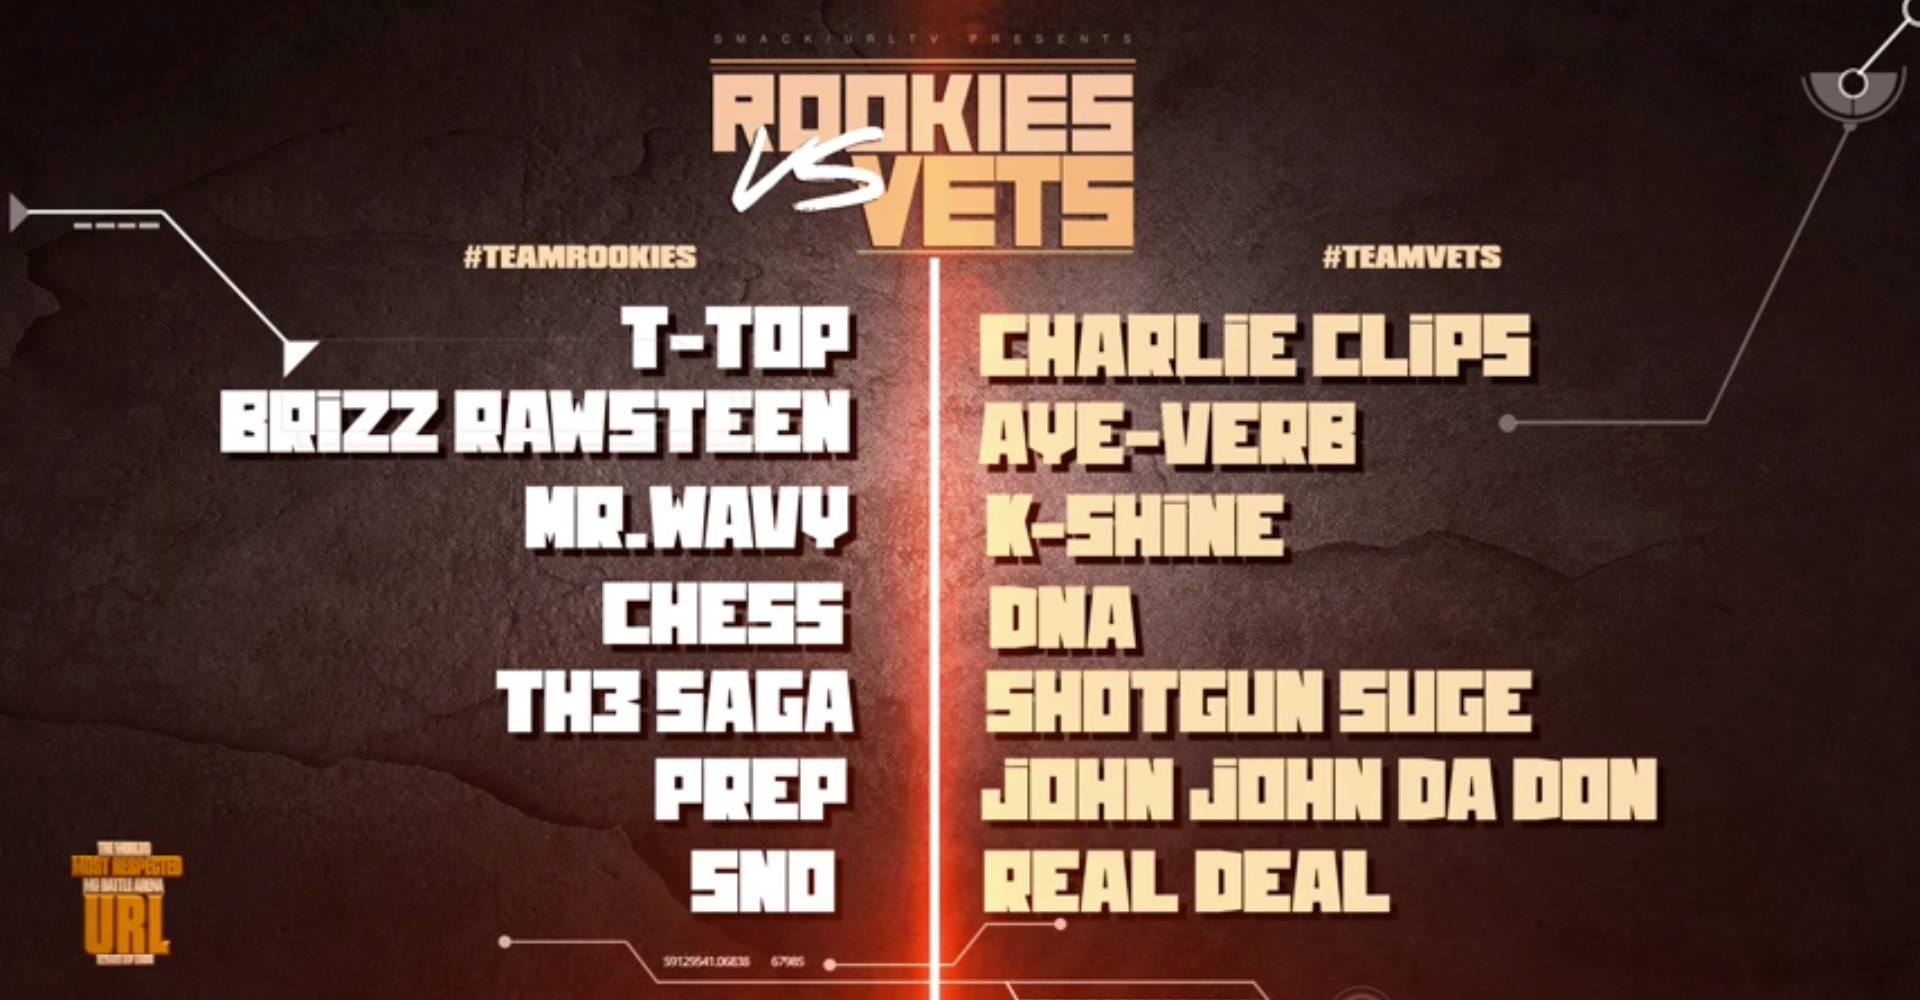 SMACK/URL's Rookies vs Vets Live Coverage